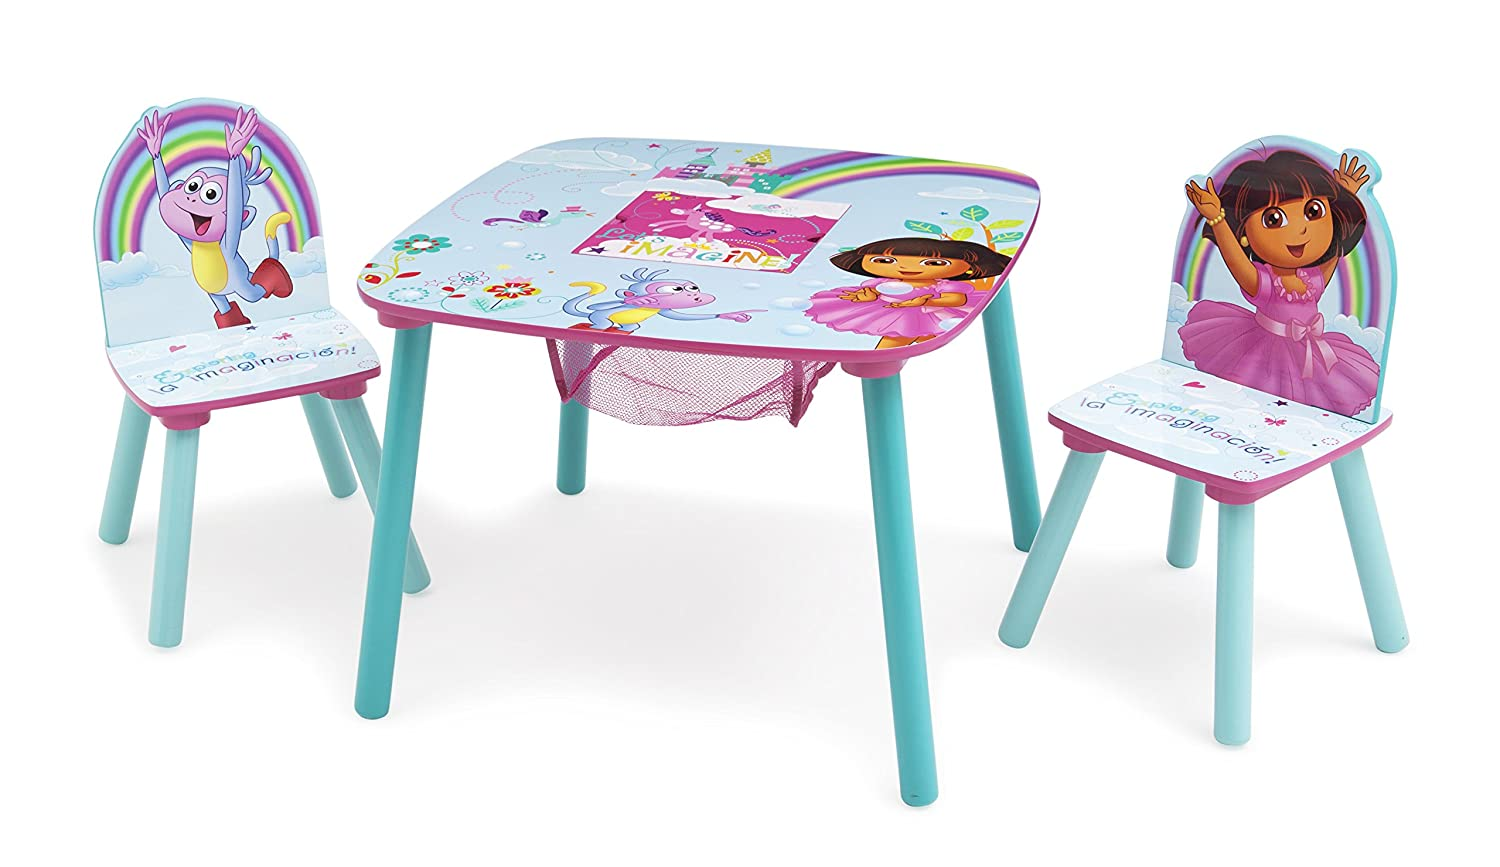 Homeschooling Snack Time - Ideal for Arts /& Crafts Nick Jr 2 Chairs Included Homework /& More Dora the Explorer Delta Children Kids Table and Chair Set With Storage